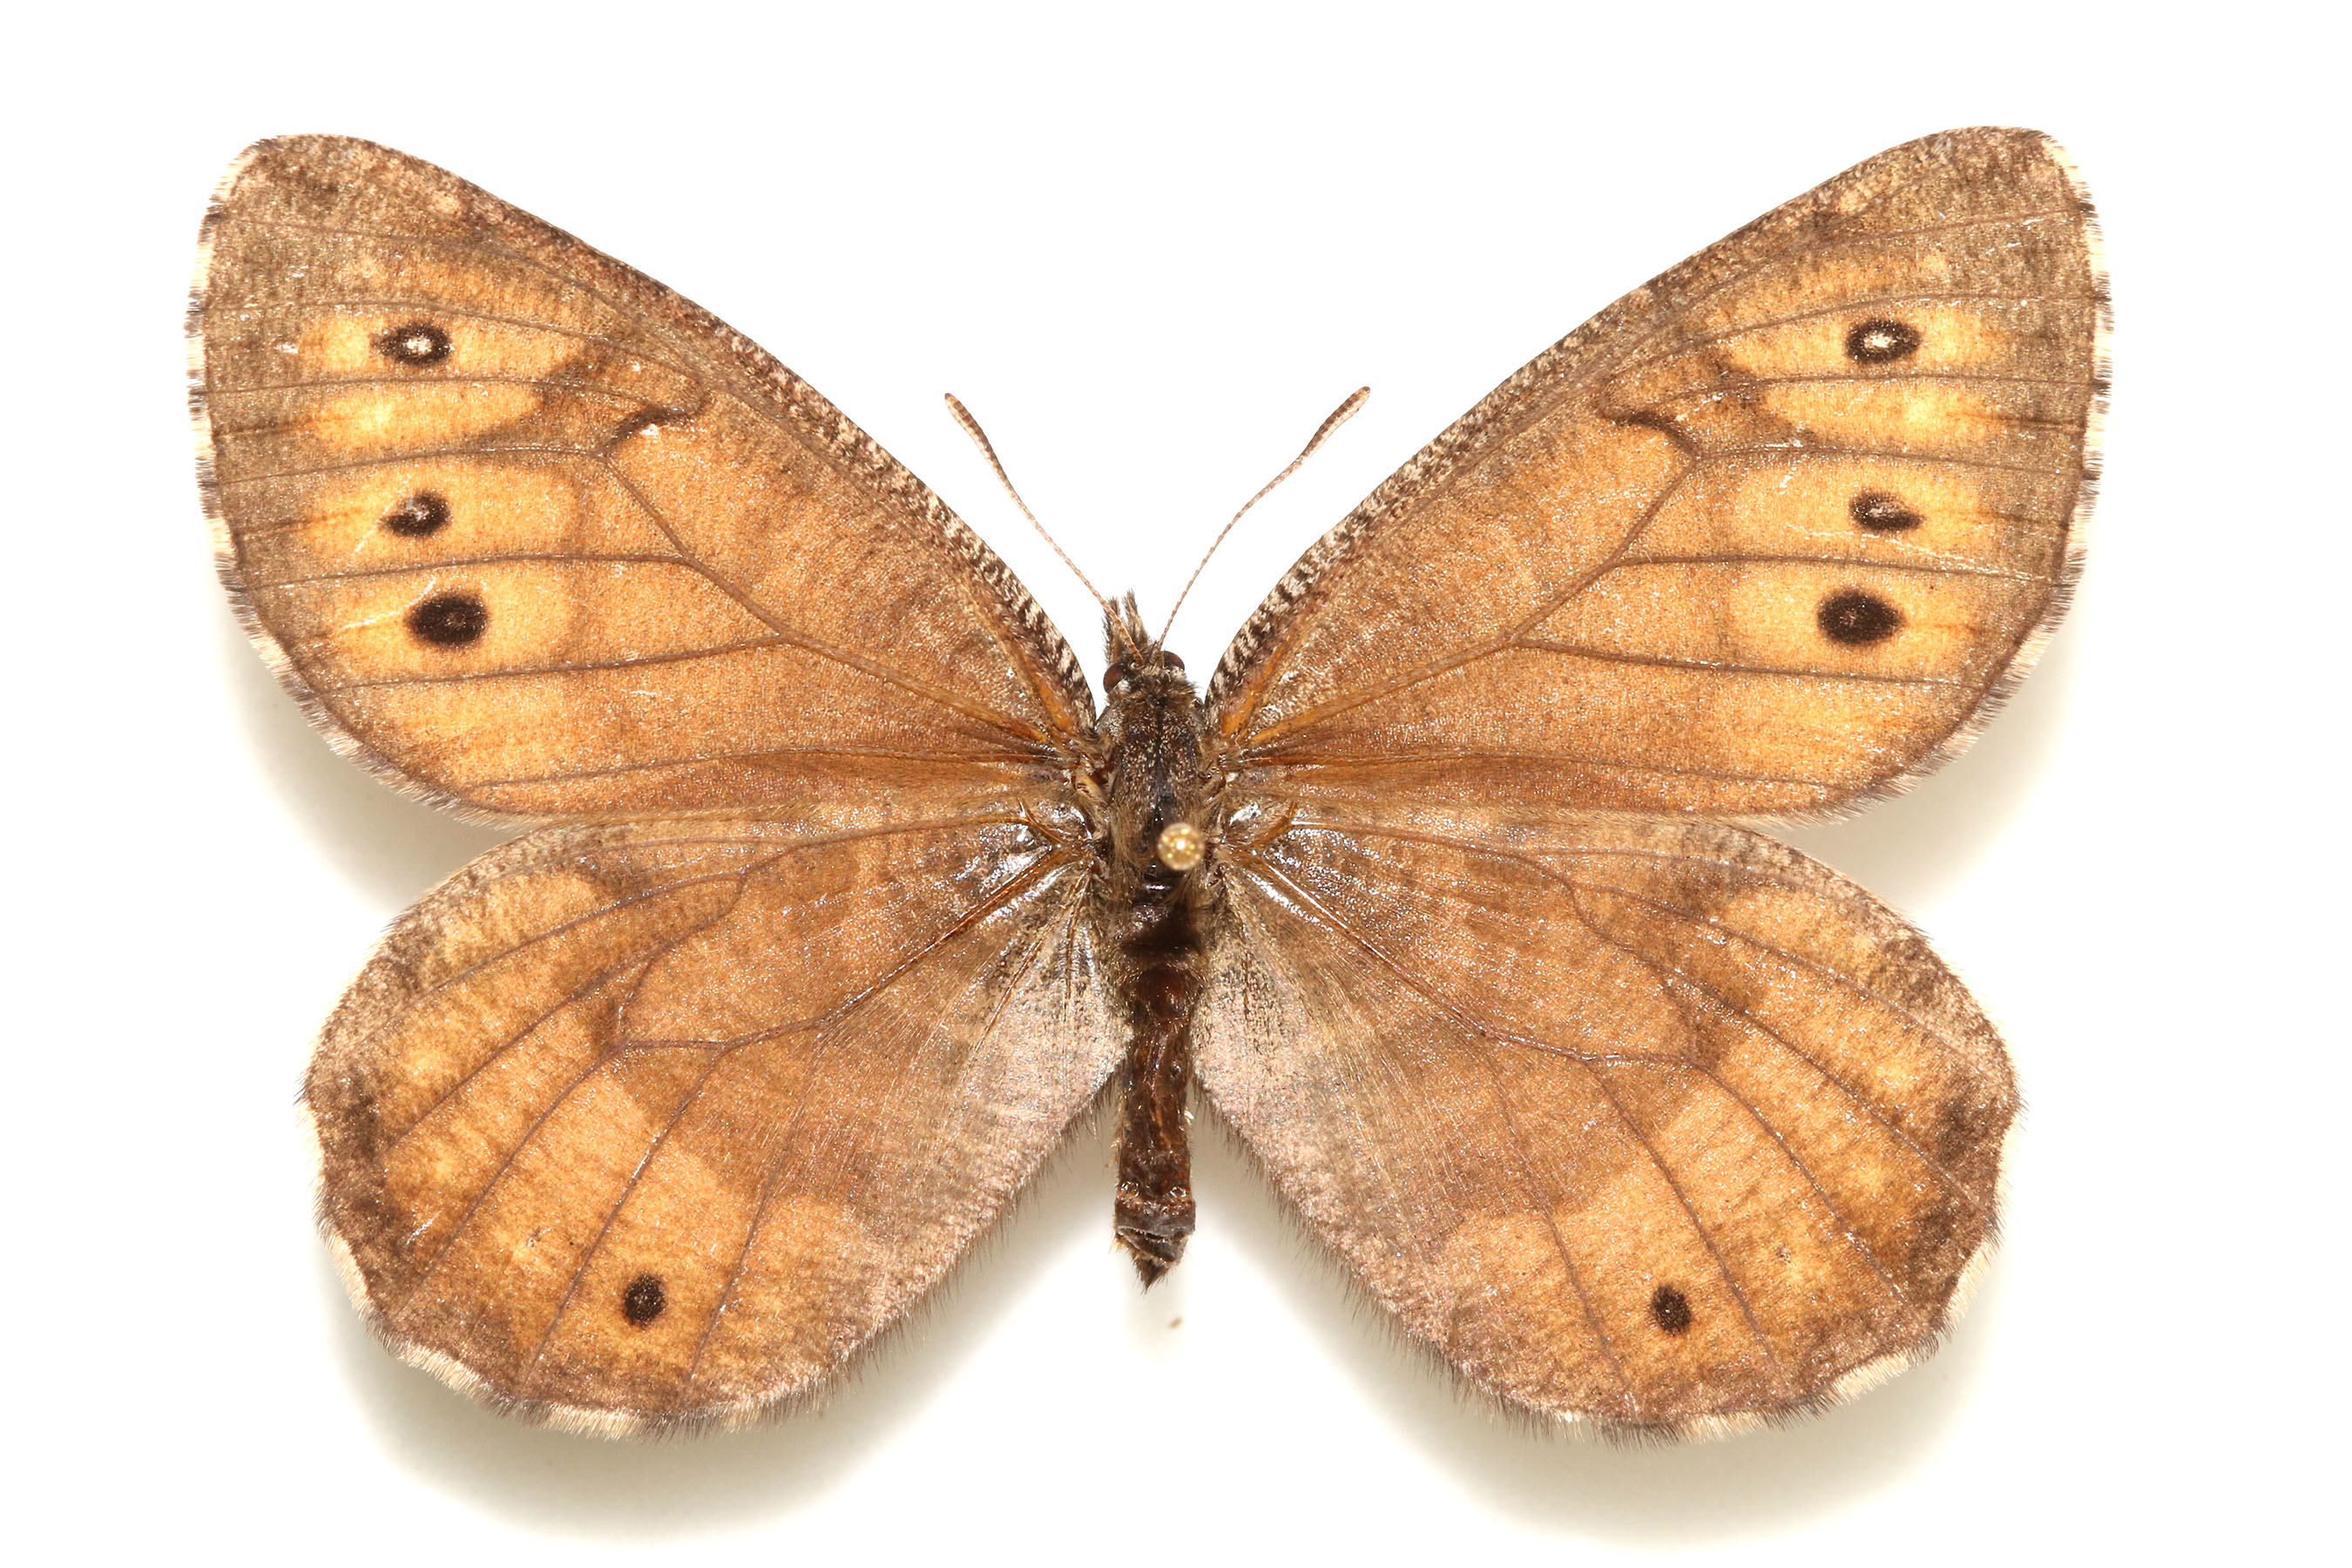 The newly discovered Tanana Arctic butterfly is known only from the Tanana-Yukon River Basin. Photo by Andrew Warren.